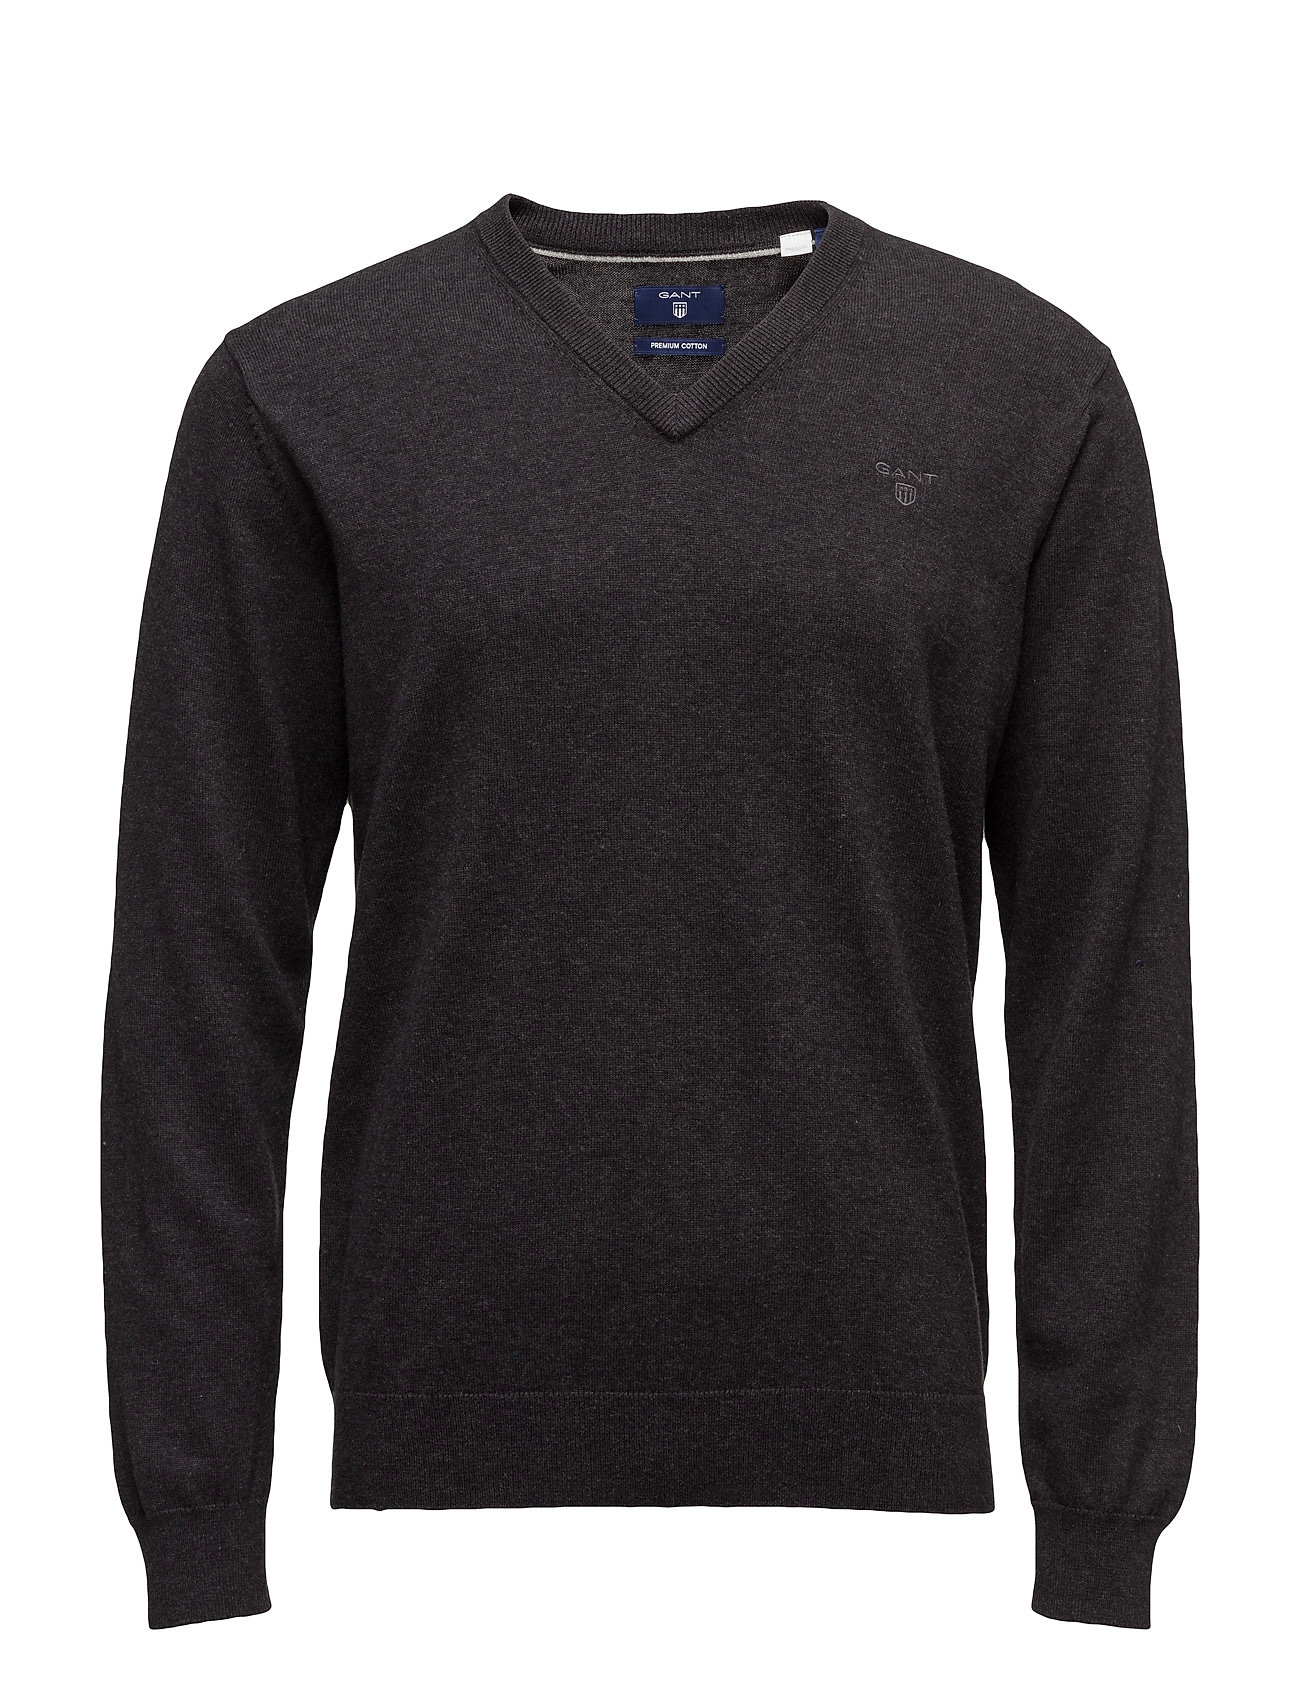 Gant LIGHT WEIGHT COTTON V-NECK - DK CHARCOAL MELANGE